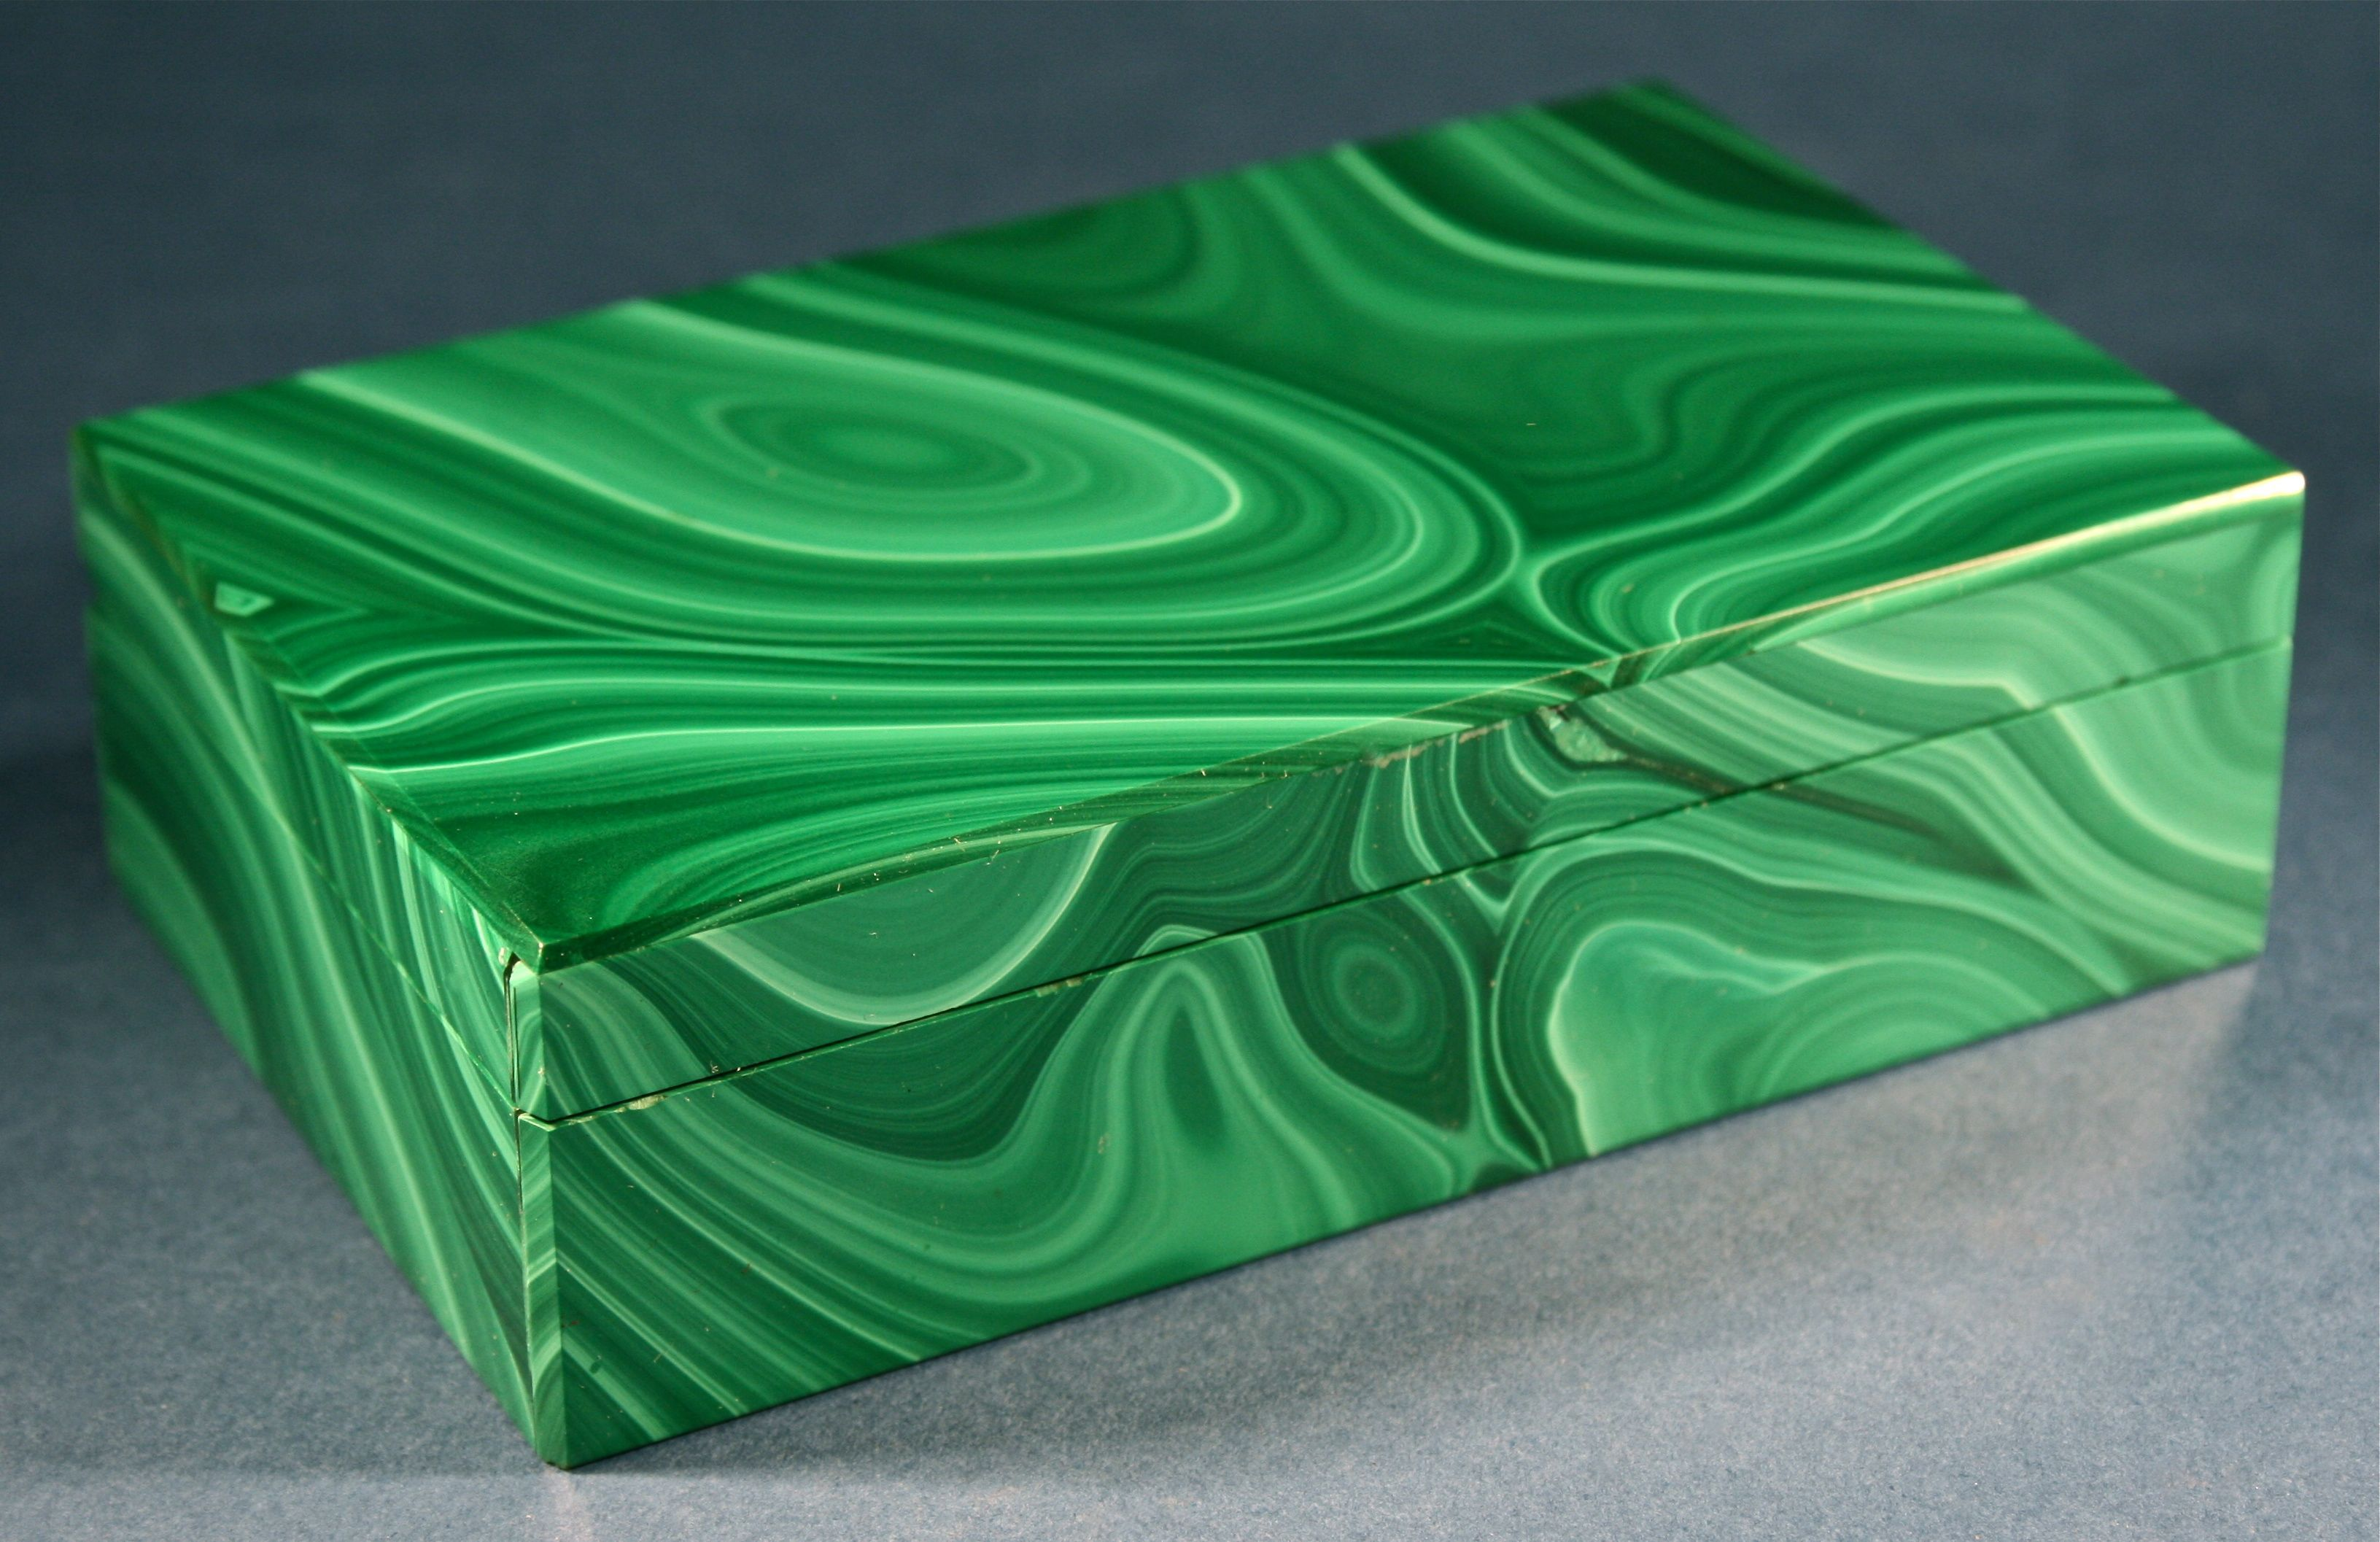 Antique Russian Handmade Malachite & Black Onyx Stone Box - http://www.busaccagallery.com/catalog.php?catid=37&itemid=6277&page=1